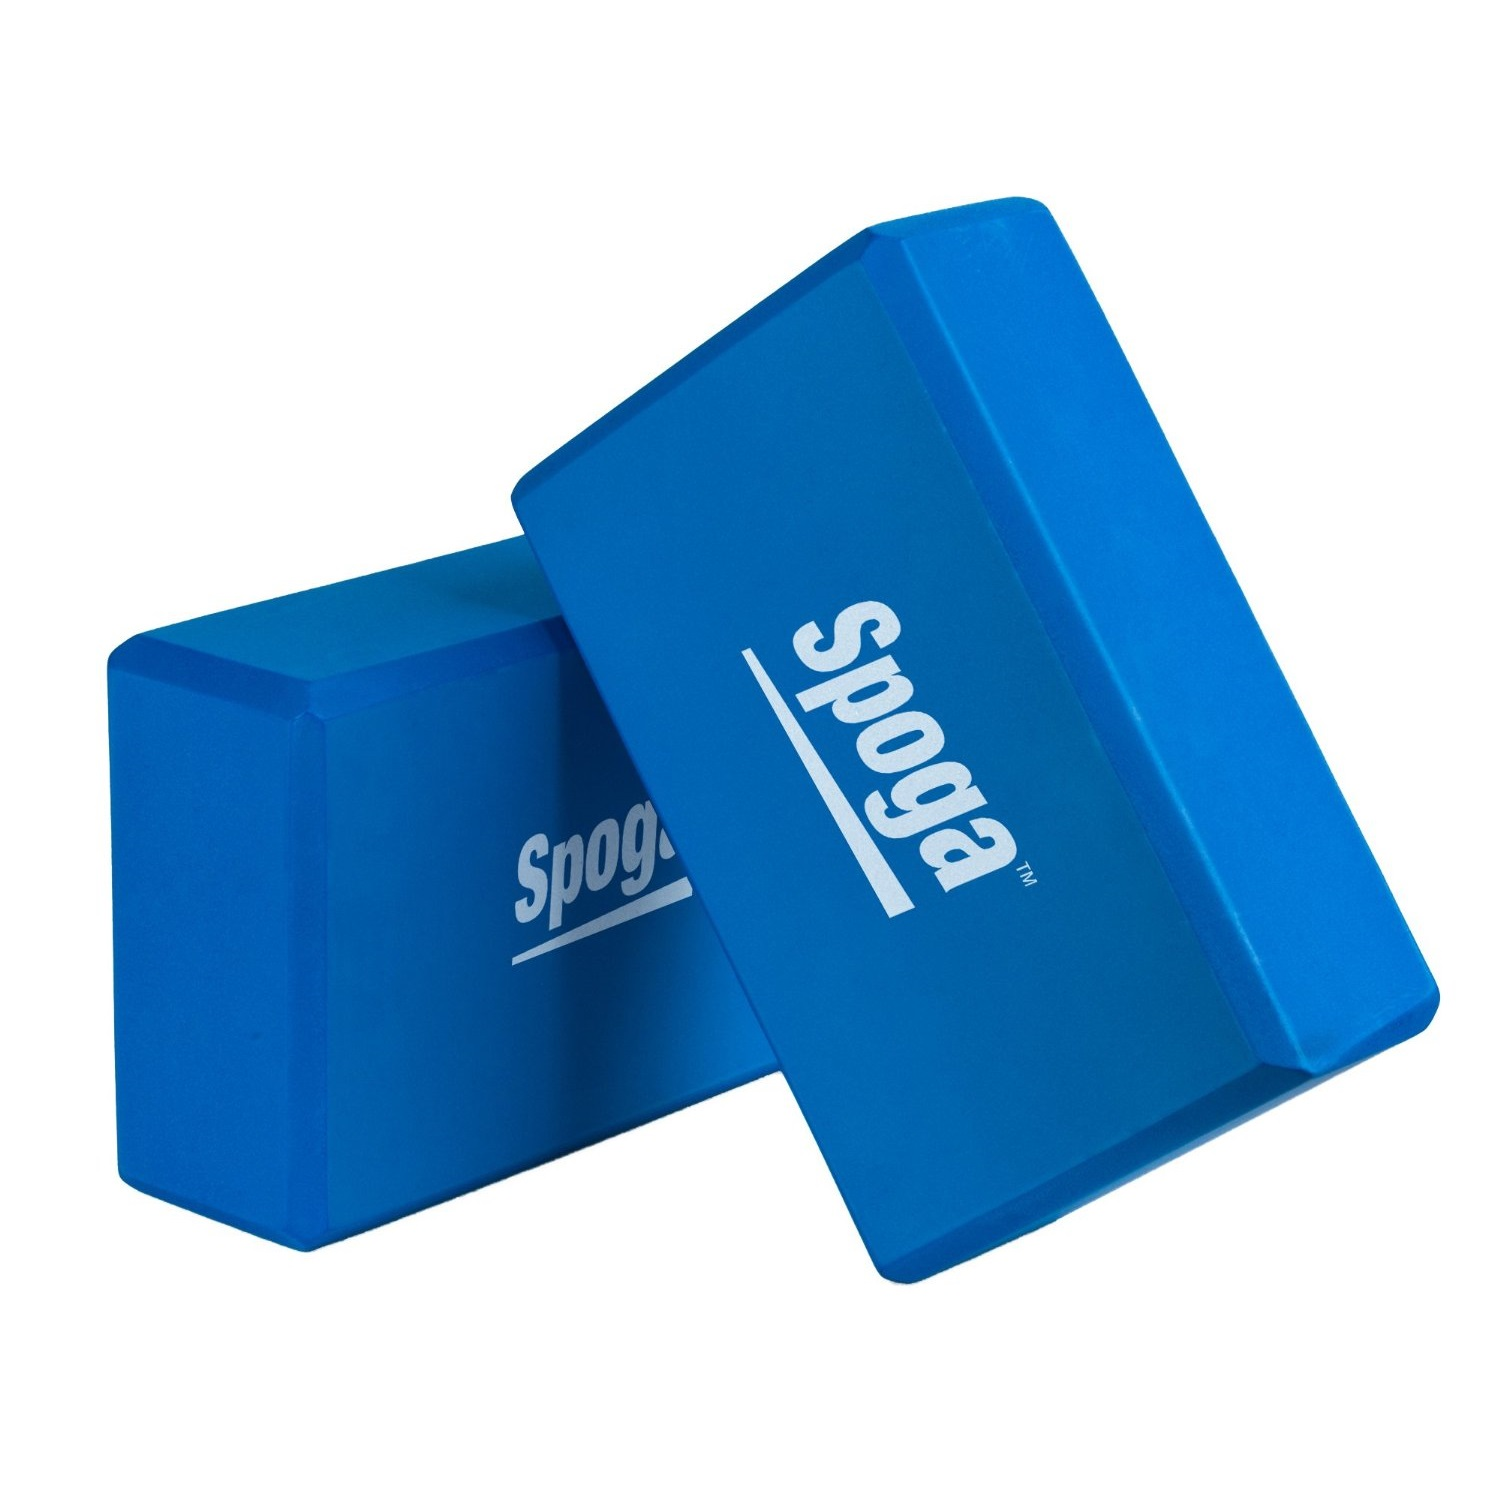 spoga premium yoga blocks